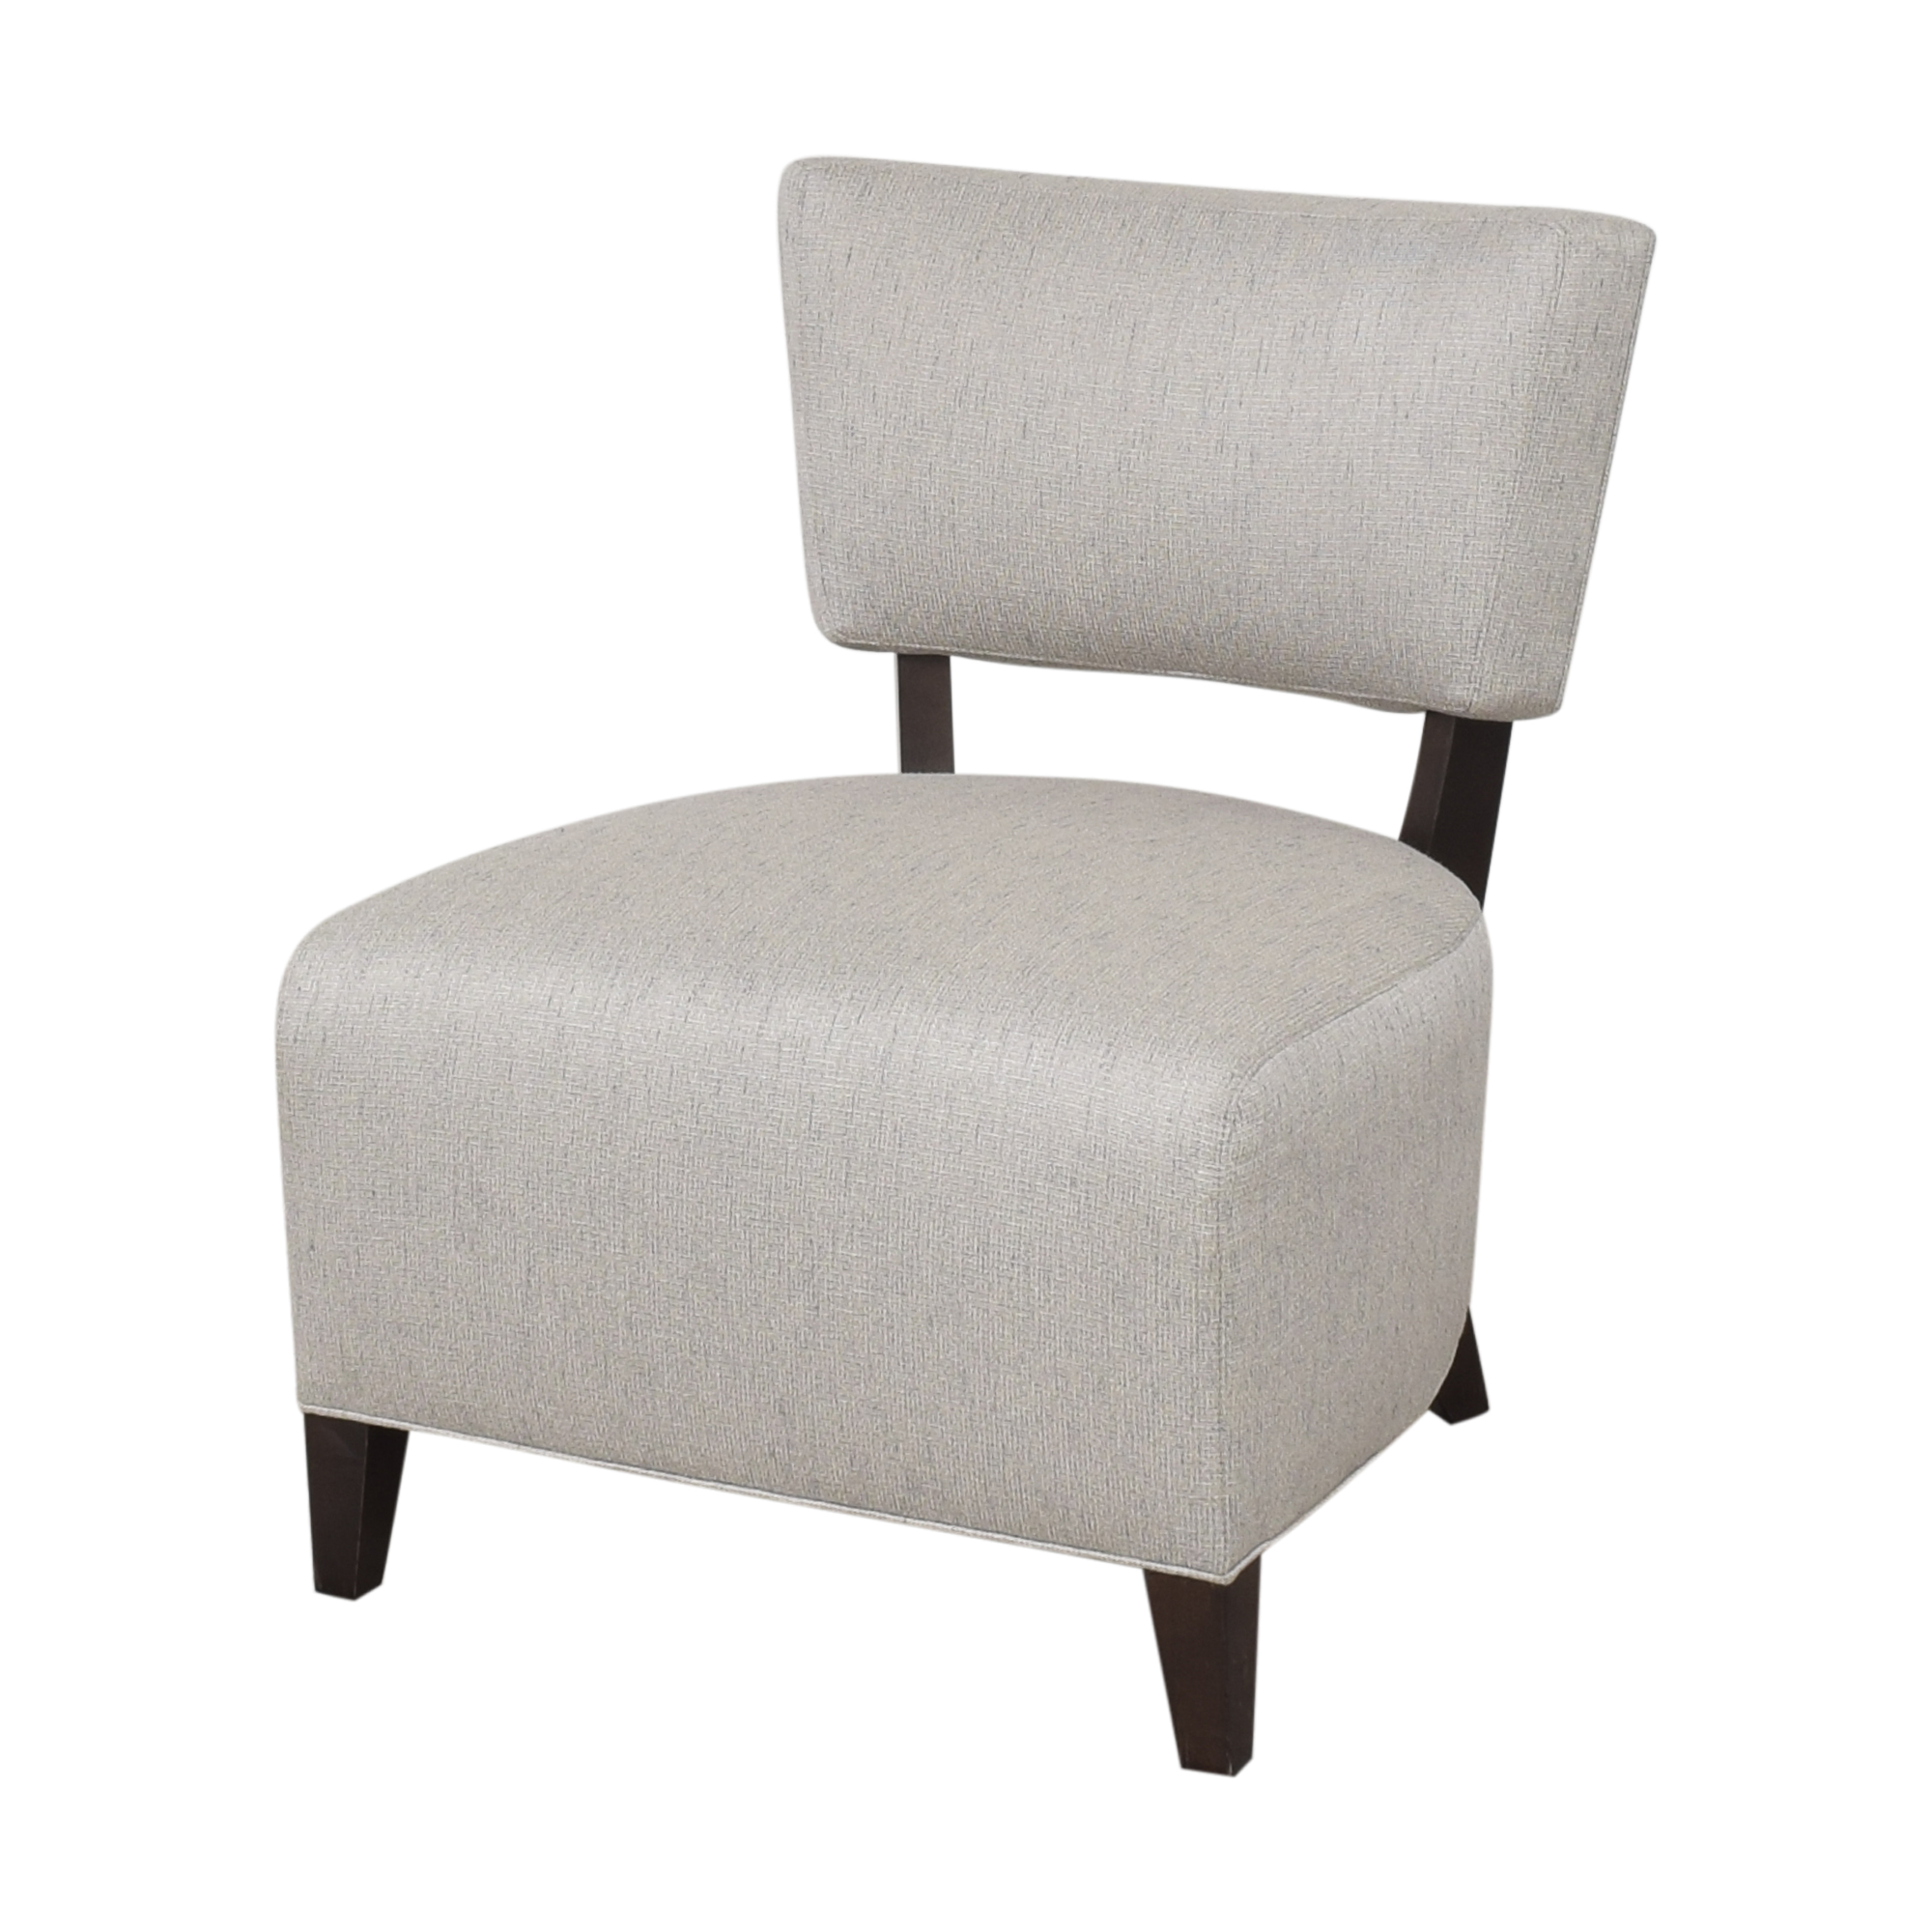 buy Ethan Allen Armless Accent Chair Ethan Allen Accent Chairs